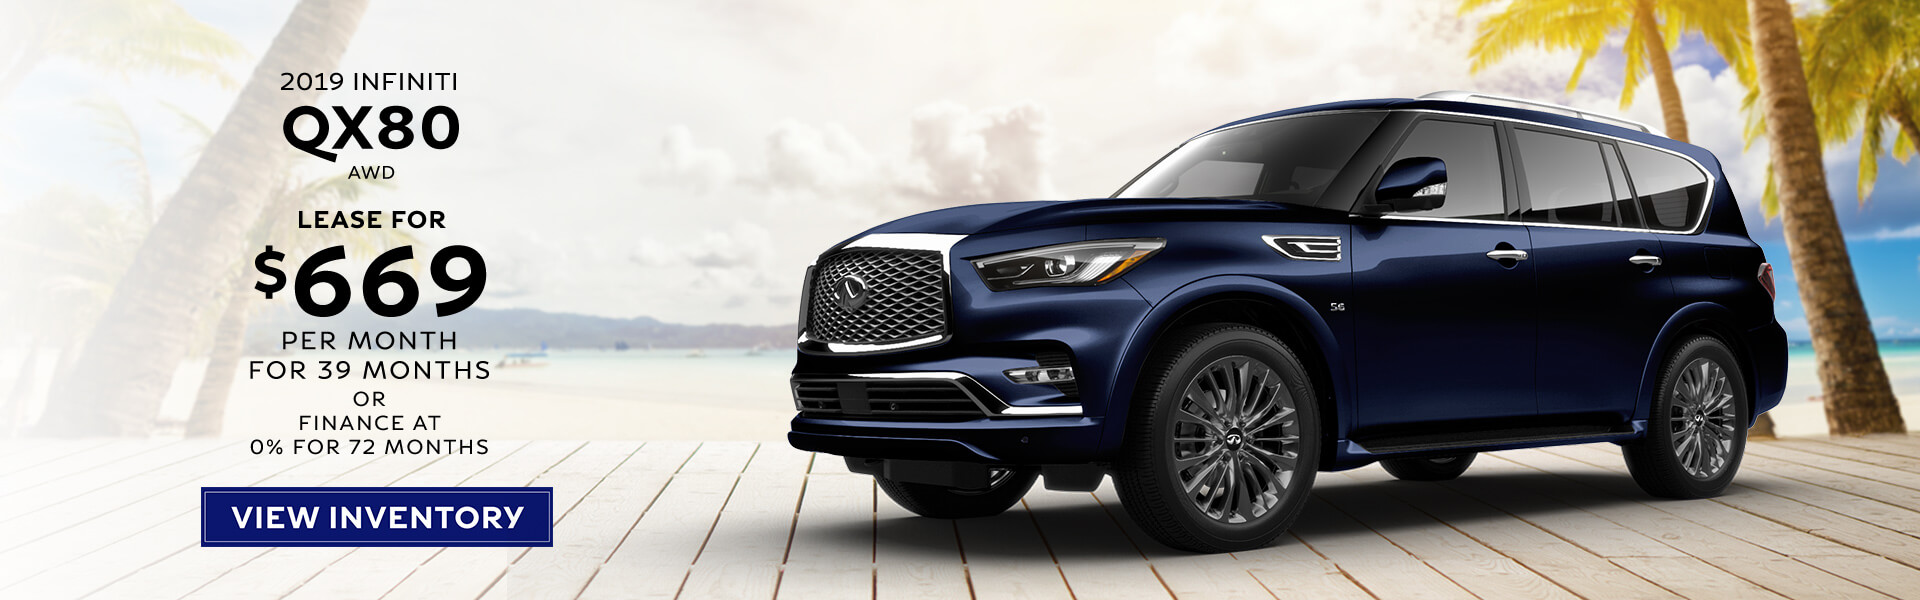 QX80 - Lease for $669